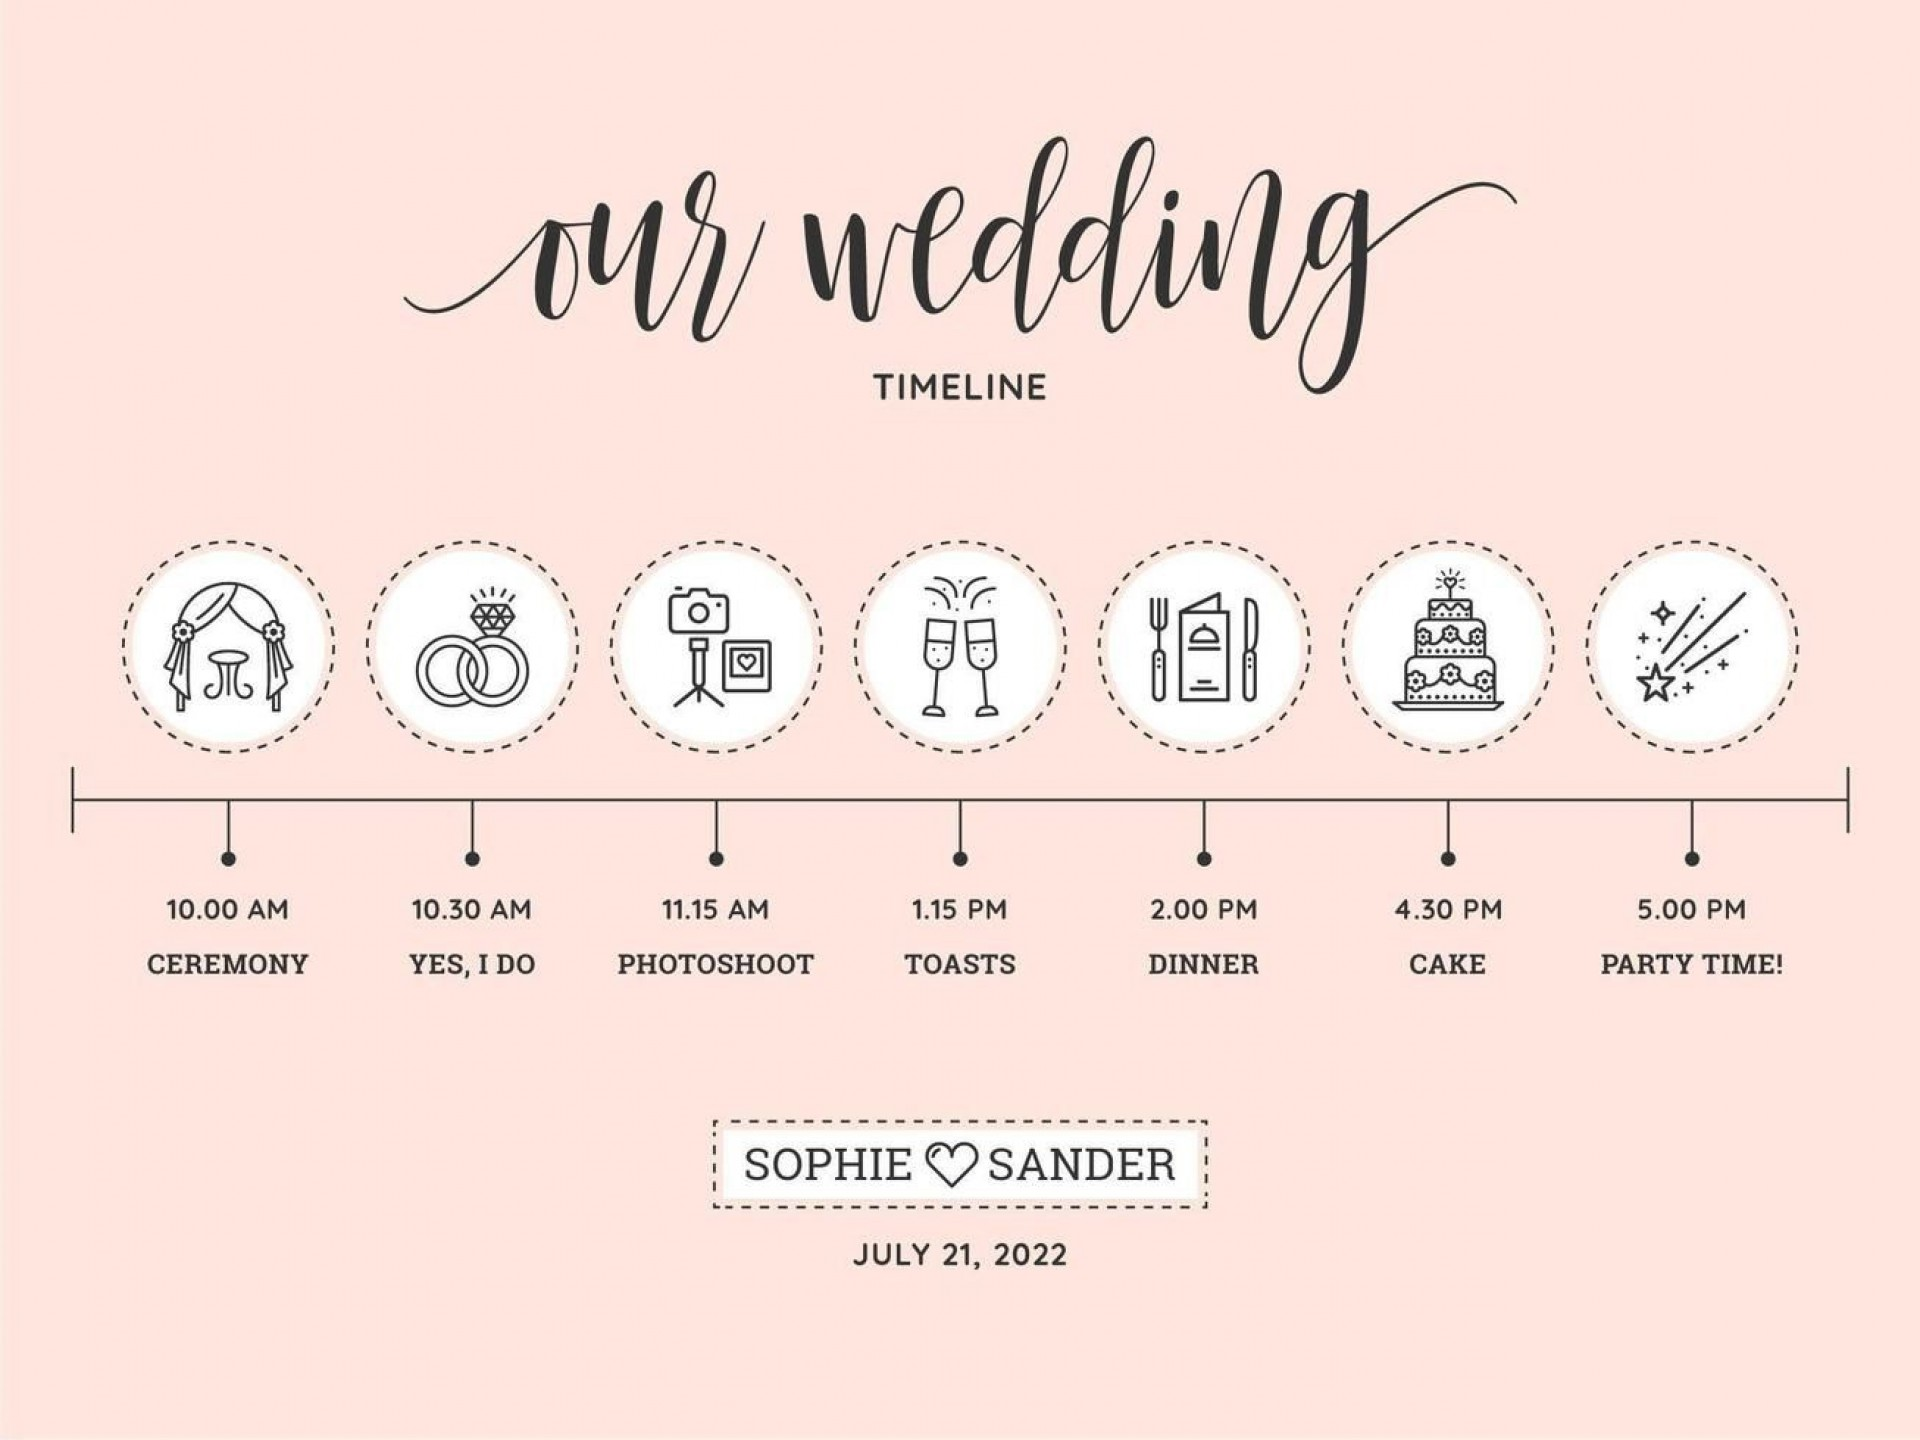 009 Phenomenal Wedding Timeline Template Free Download Concept 1920